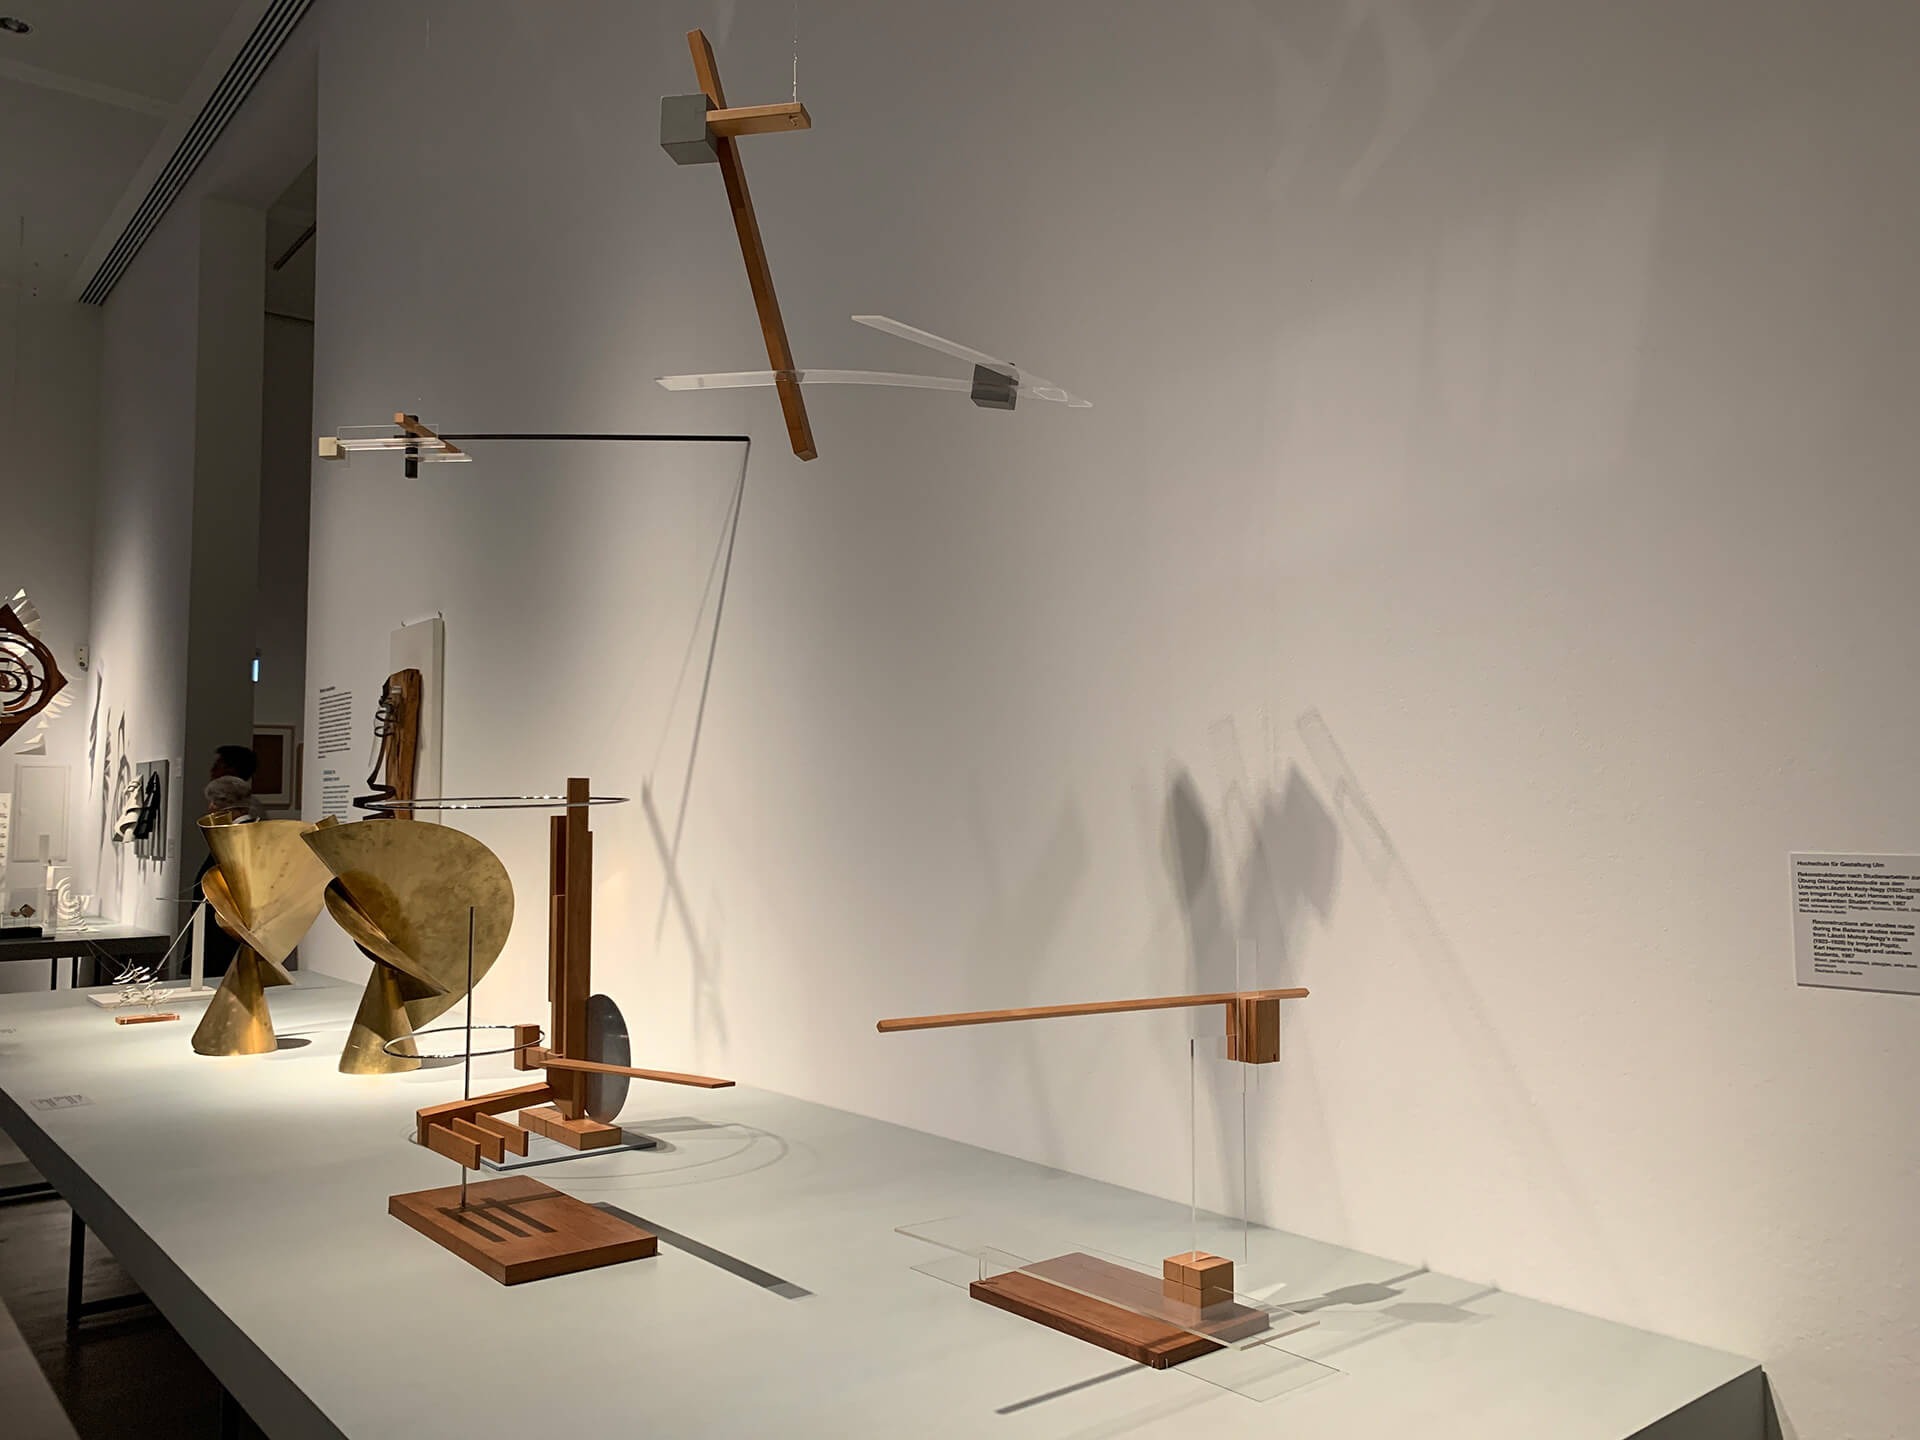 Preliminary course student works at the 'Original Bauhaus' exhibition in Berlin | Bauhaus | Germany | STIRworld